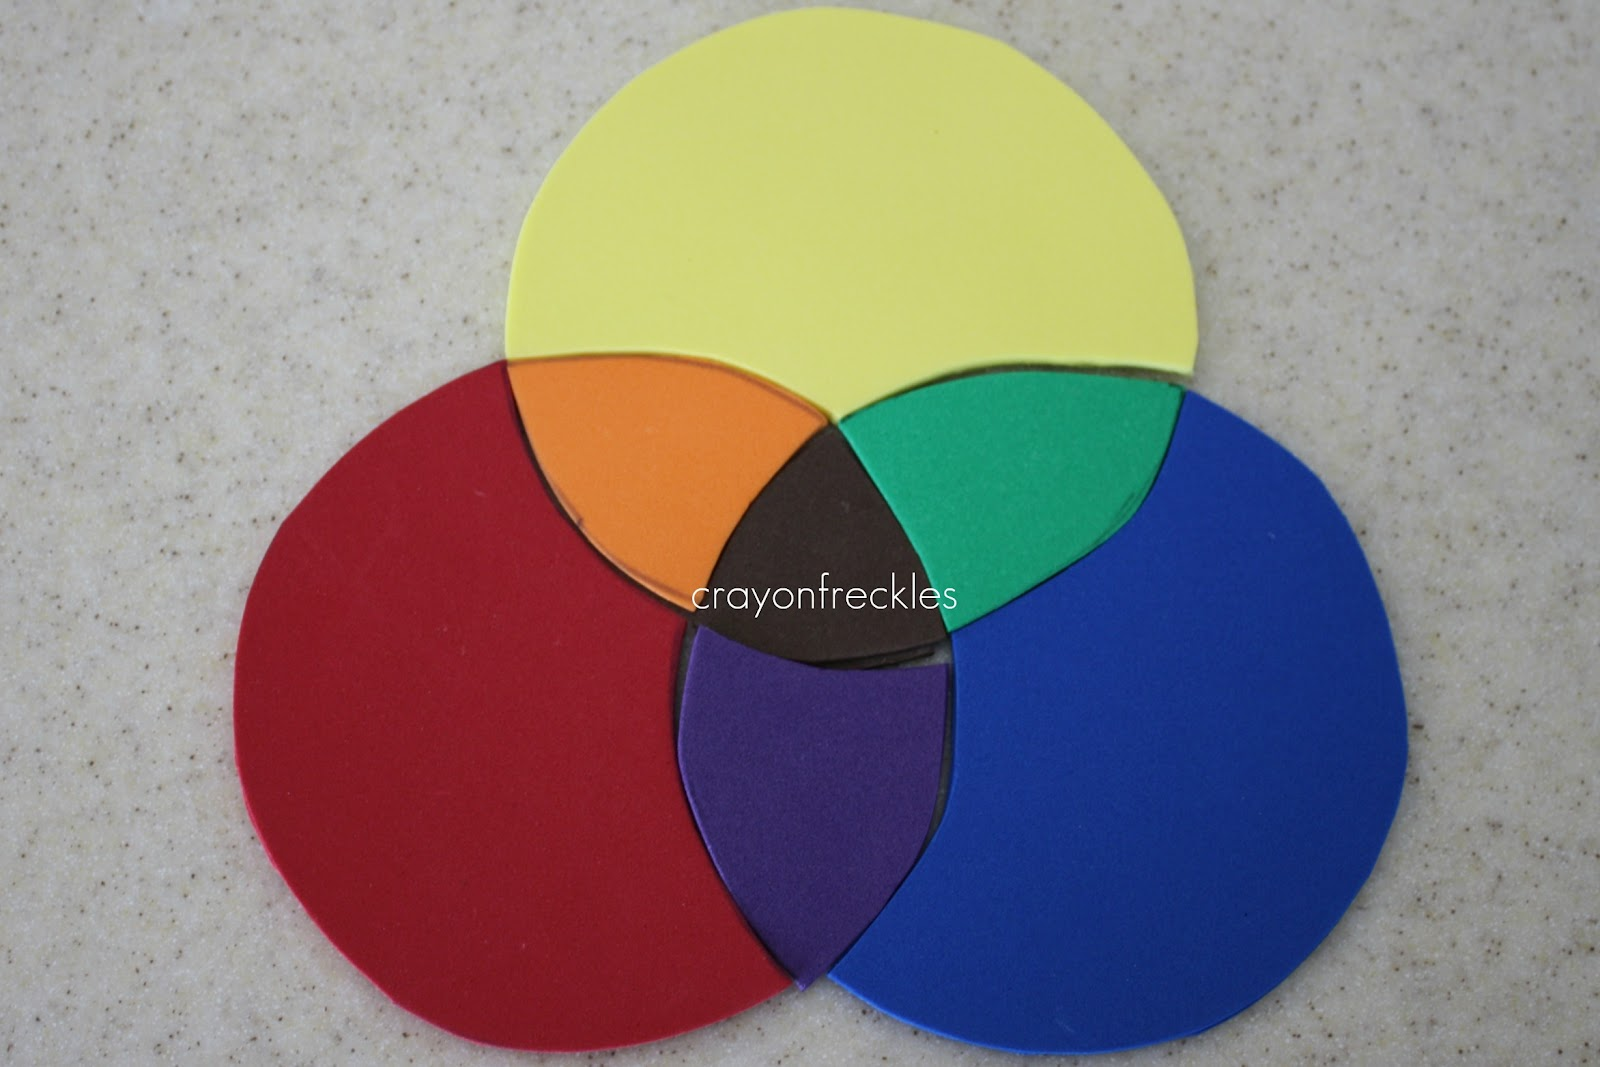 Venn Diagram Puzzles Ncaa Basketball Court Crayon Freckles Diy Color Wheel Foam Puzzle